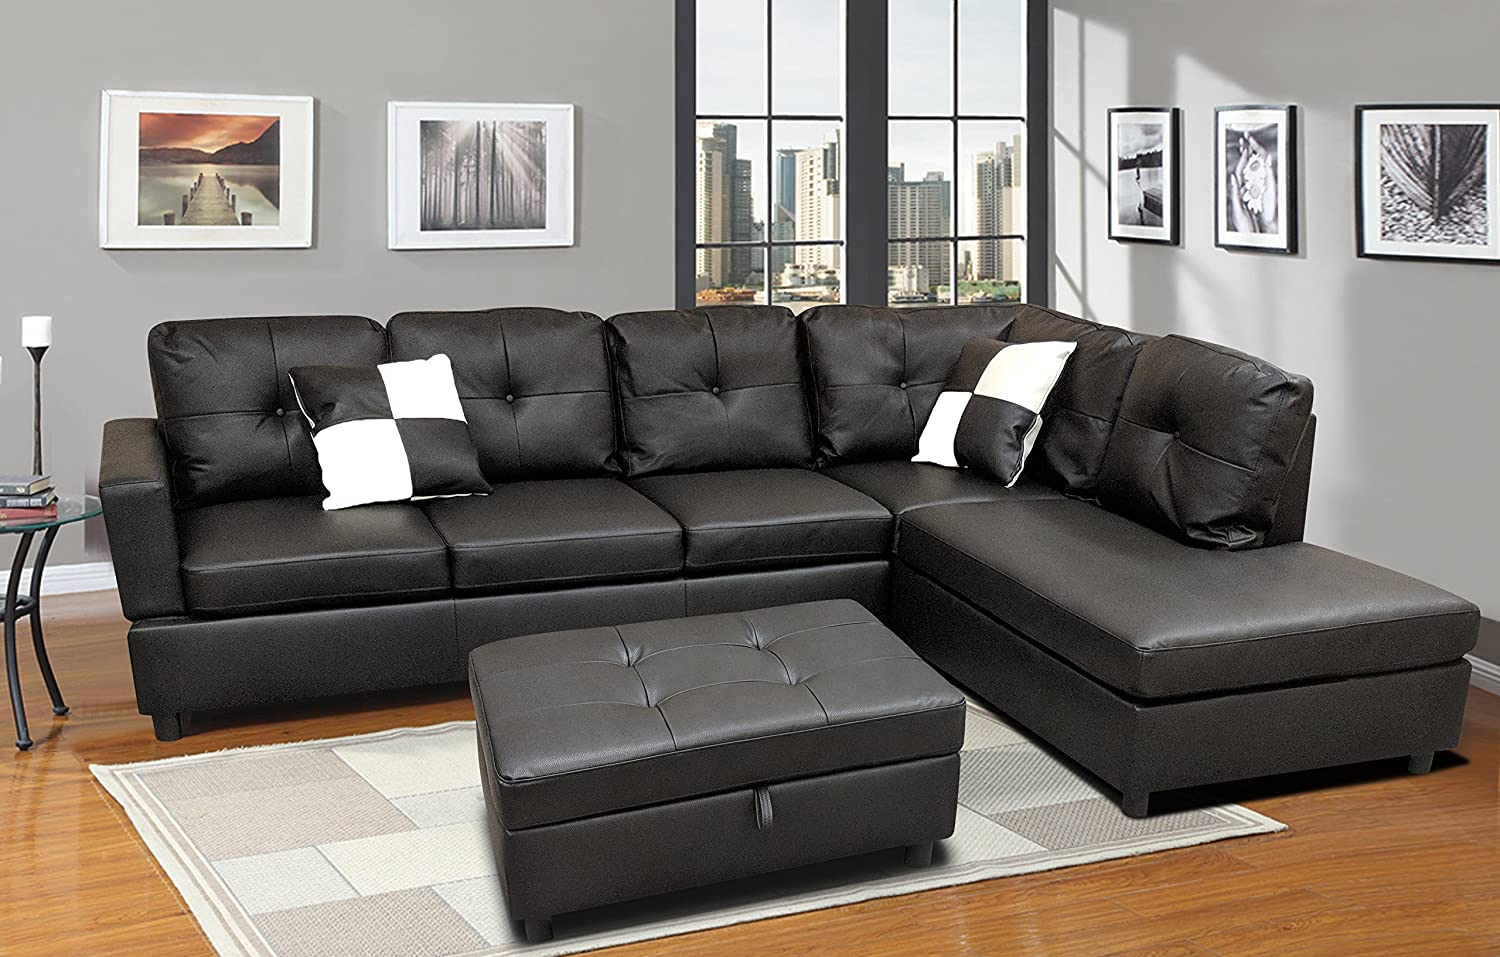 Amazing Winpex 3 Piece Faux Leather Sectional Sofa Set With Free Forskolin Free Trial Chair Design Images Forskolin Free Trialorg